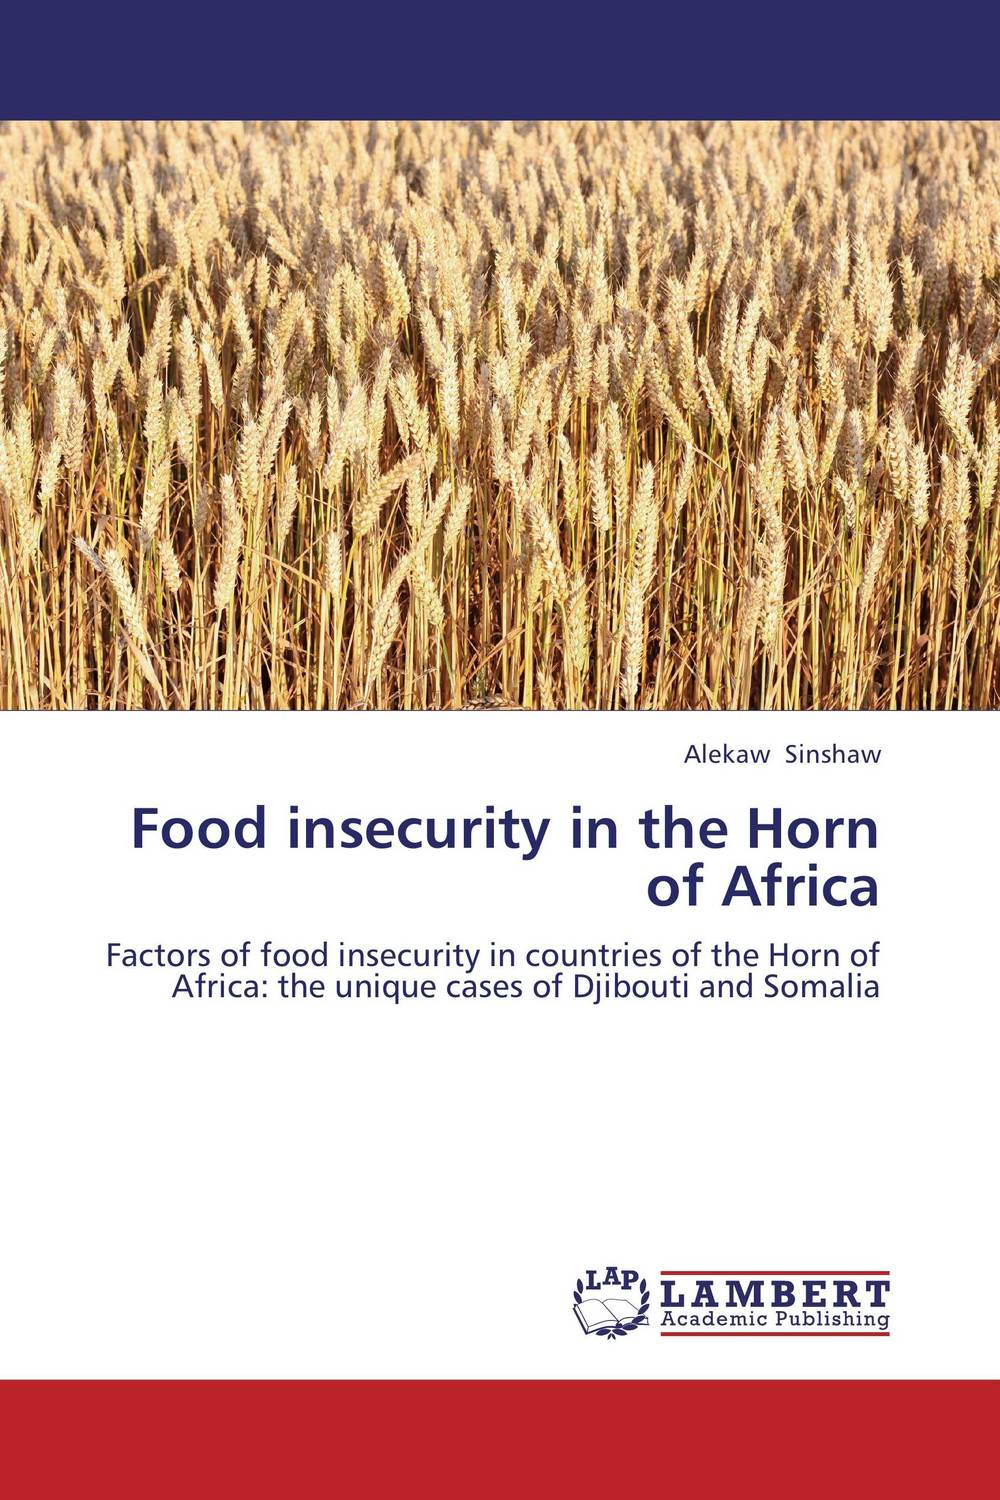 Food insecurity in the Horn of Africa thermo operated water valves can be used in food processing equipments biomass boilers and hydraulic systems